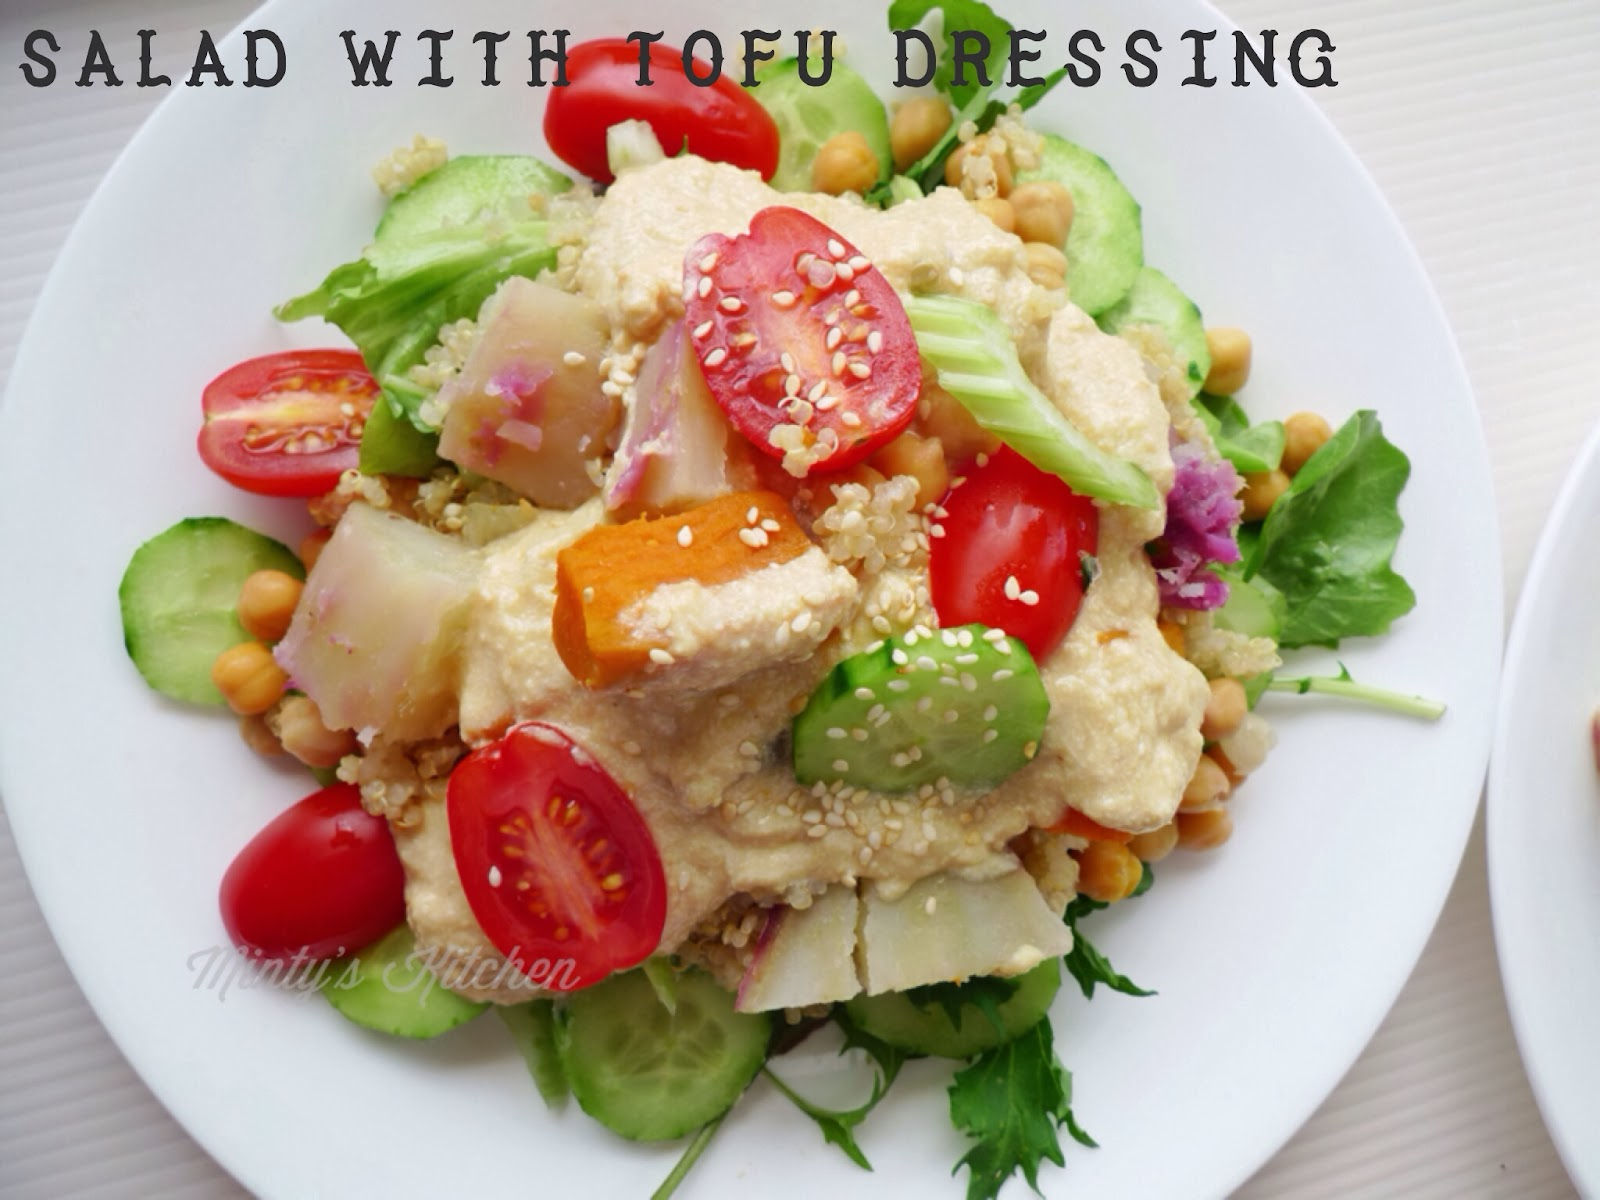 Minty's Kitchen: Tofu Dressing on Salad